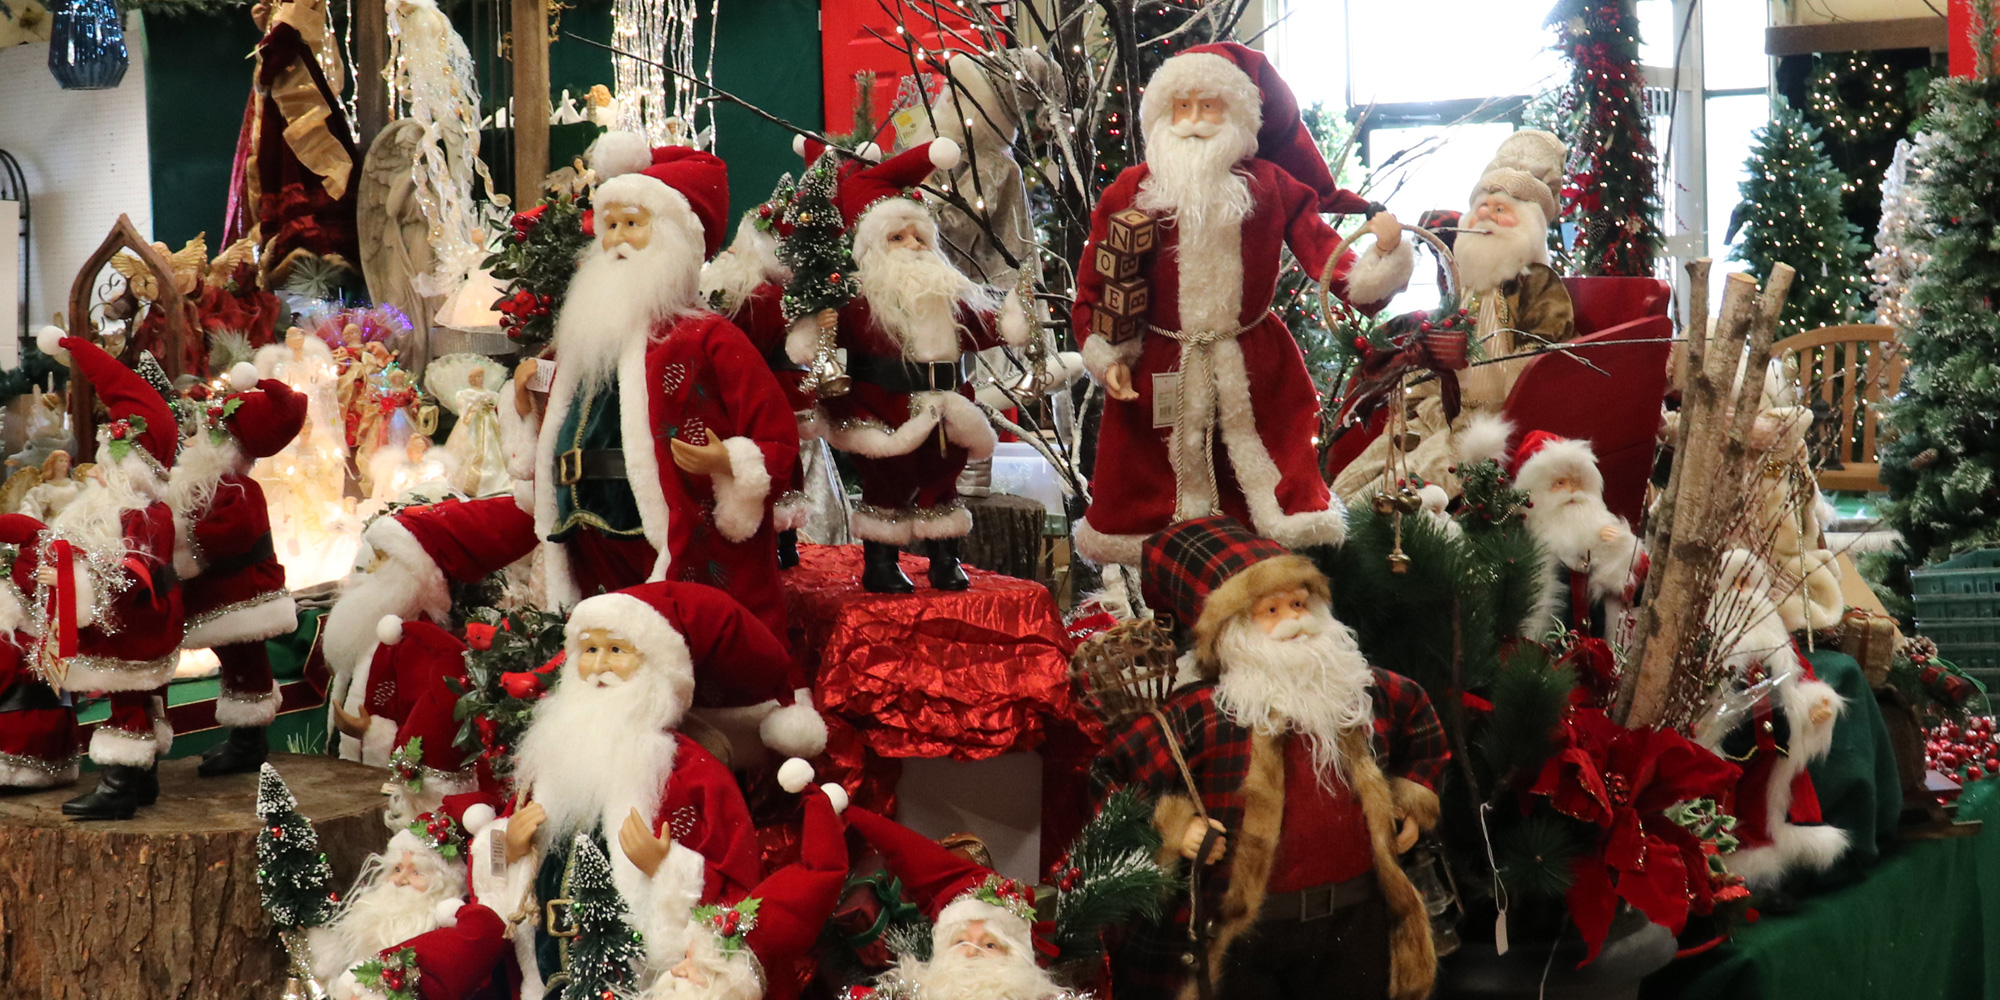 A Superior Selection of Santa Figures